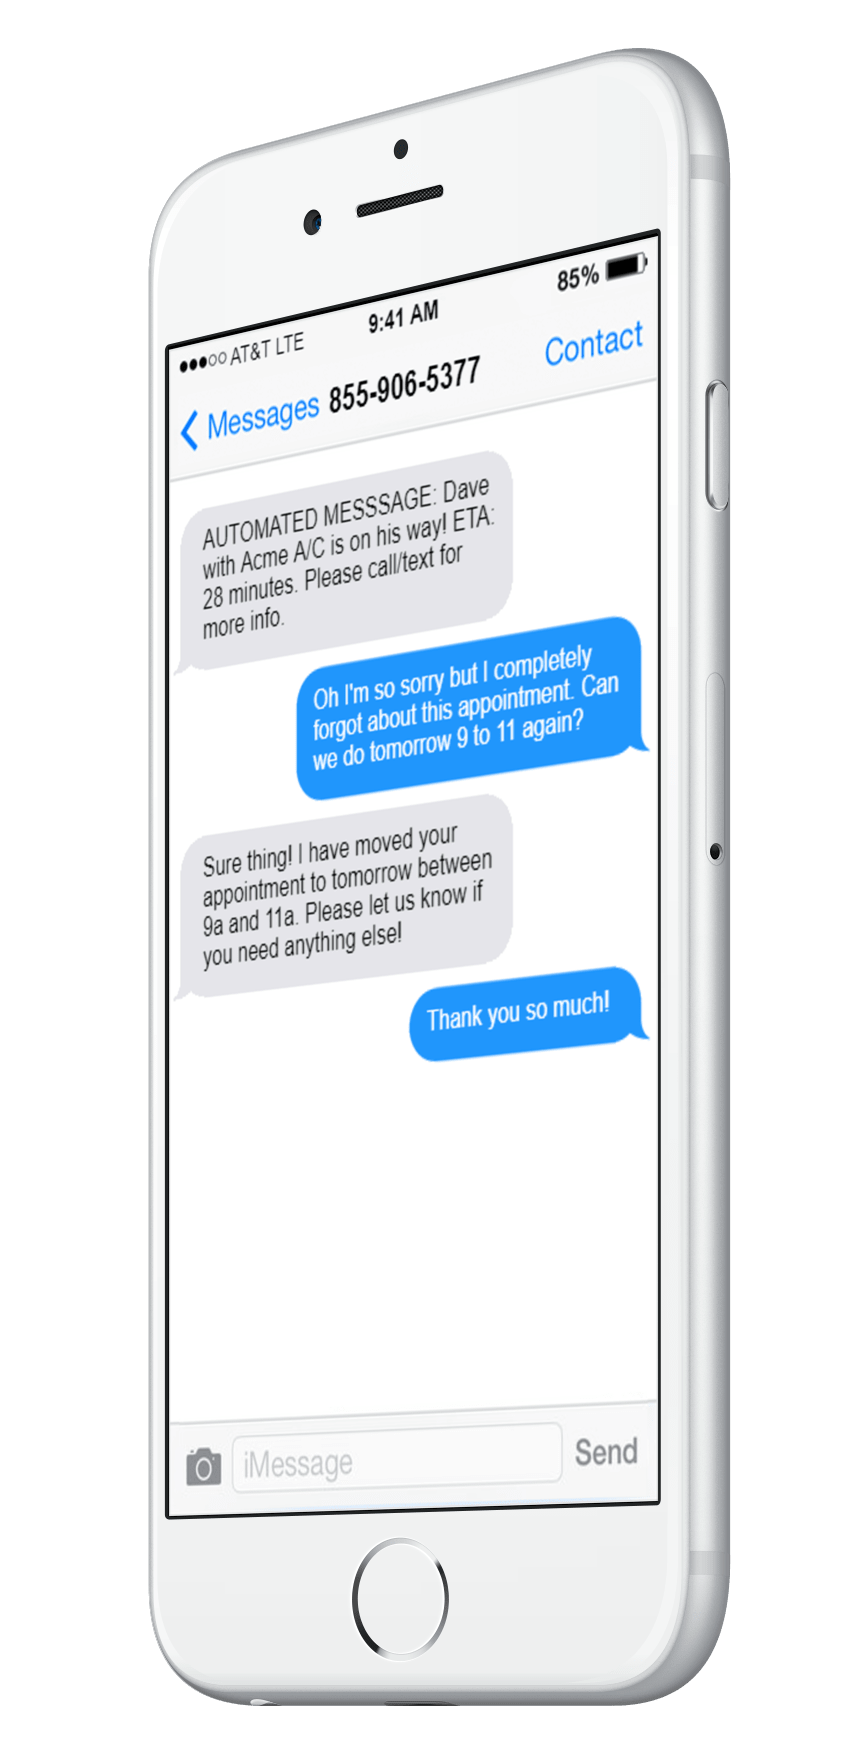 iPhone SMS With Customer